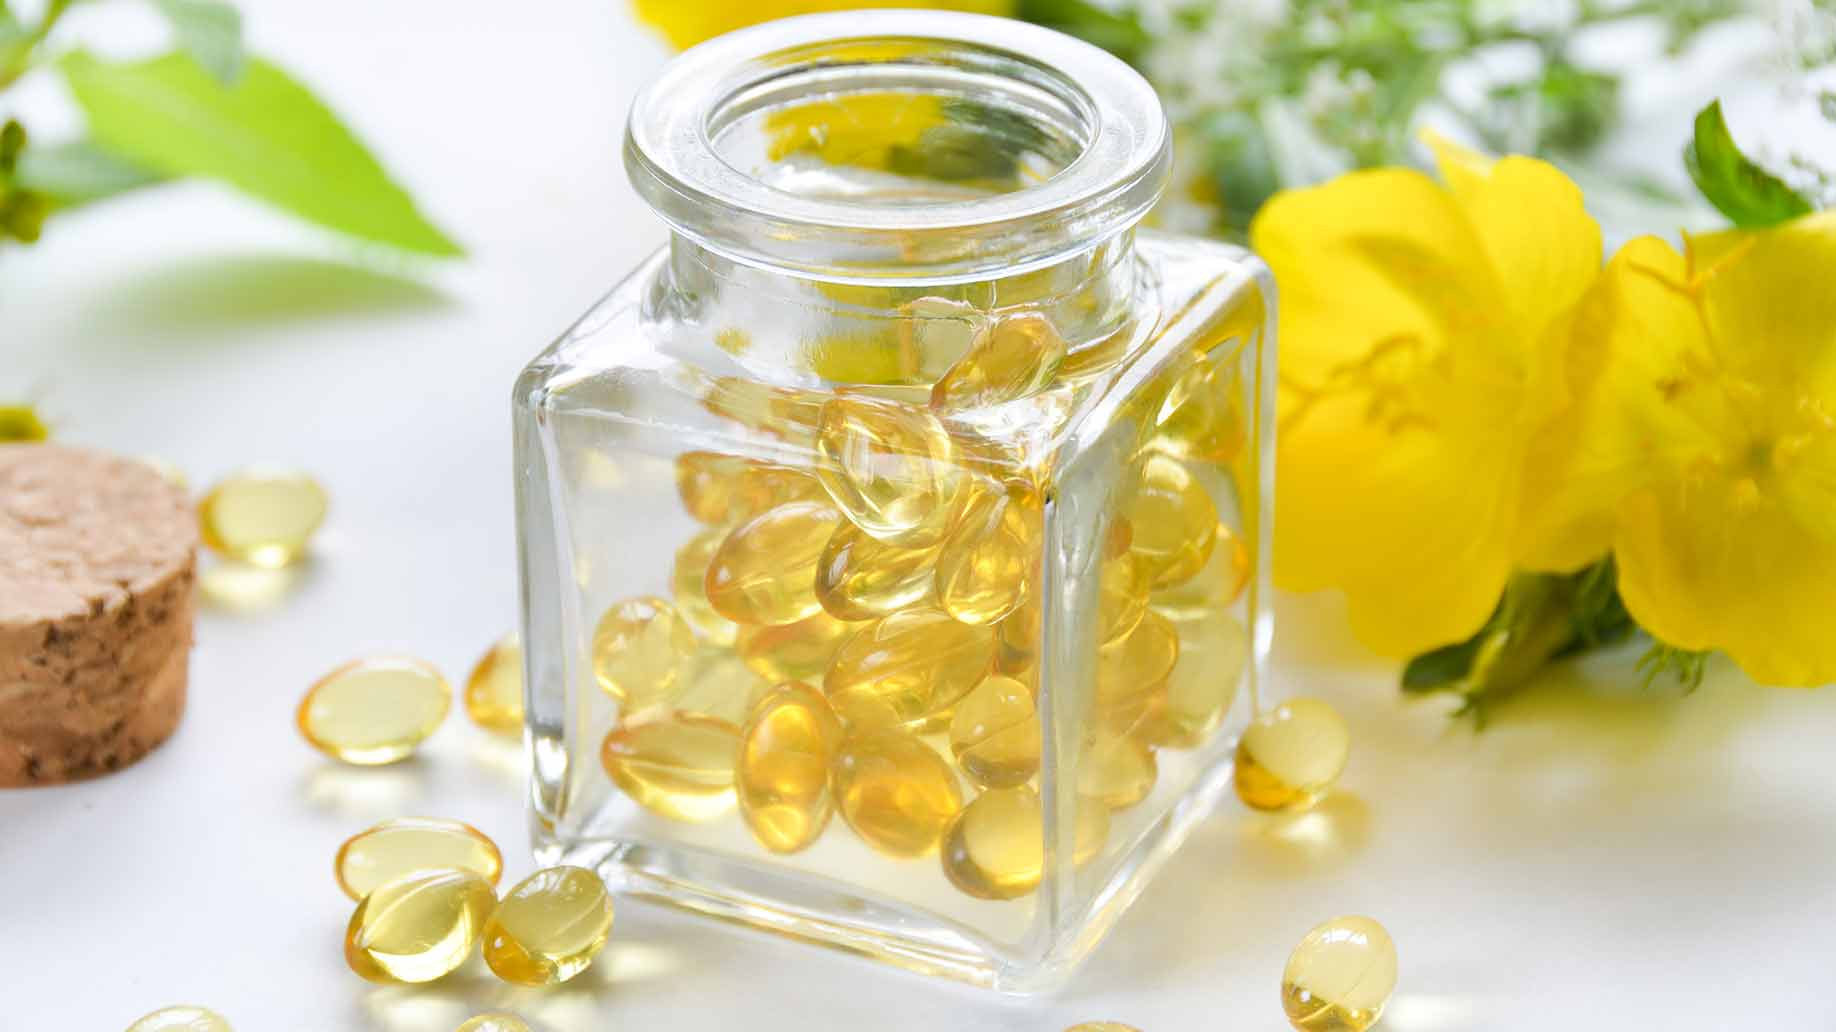 evening primrose oil yellow flower gamma linolenic acid omega 6 fatty acid anti inflammatory natural remedies